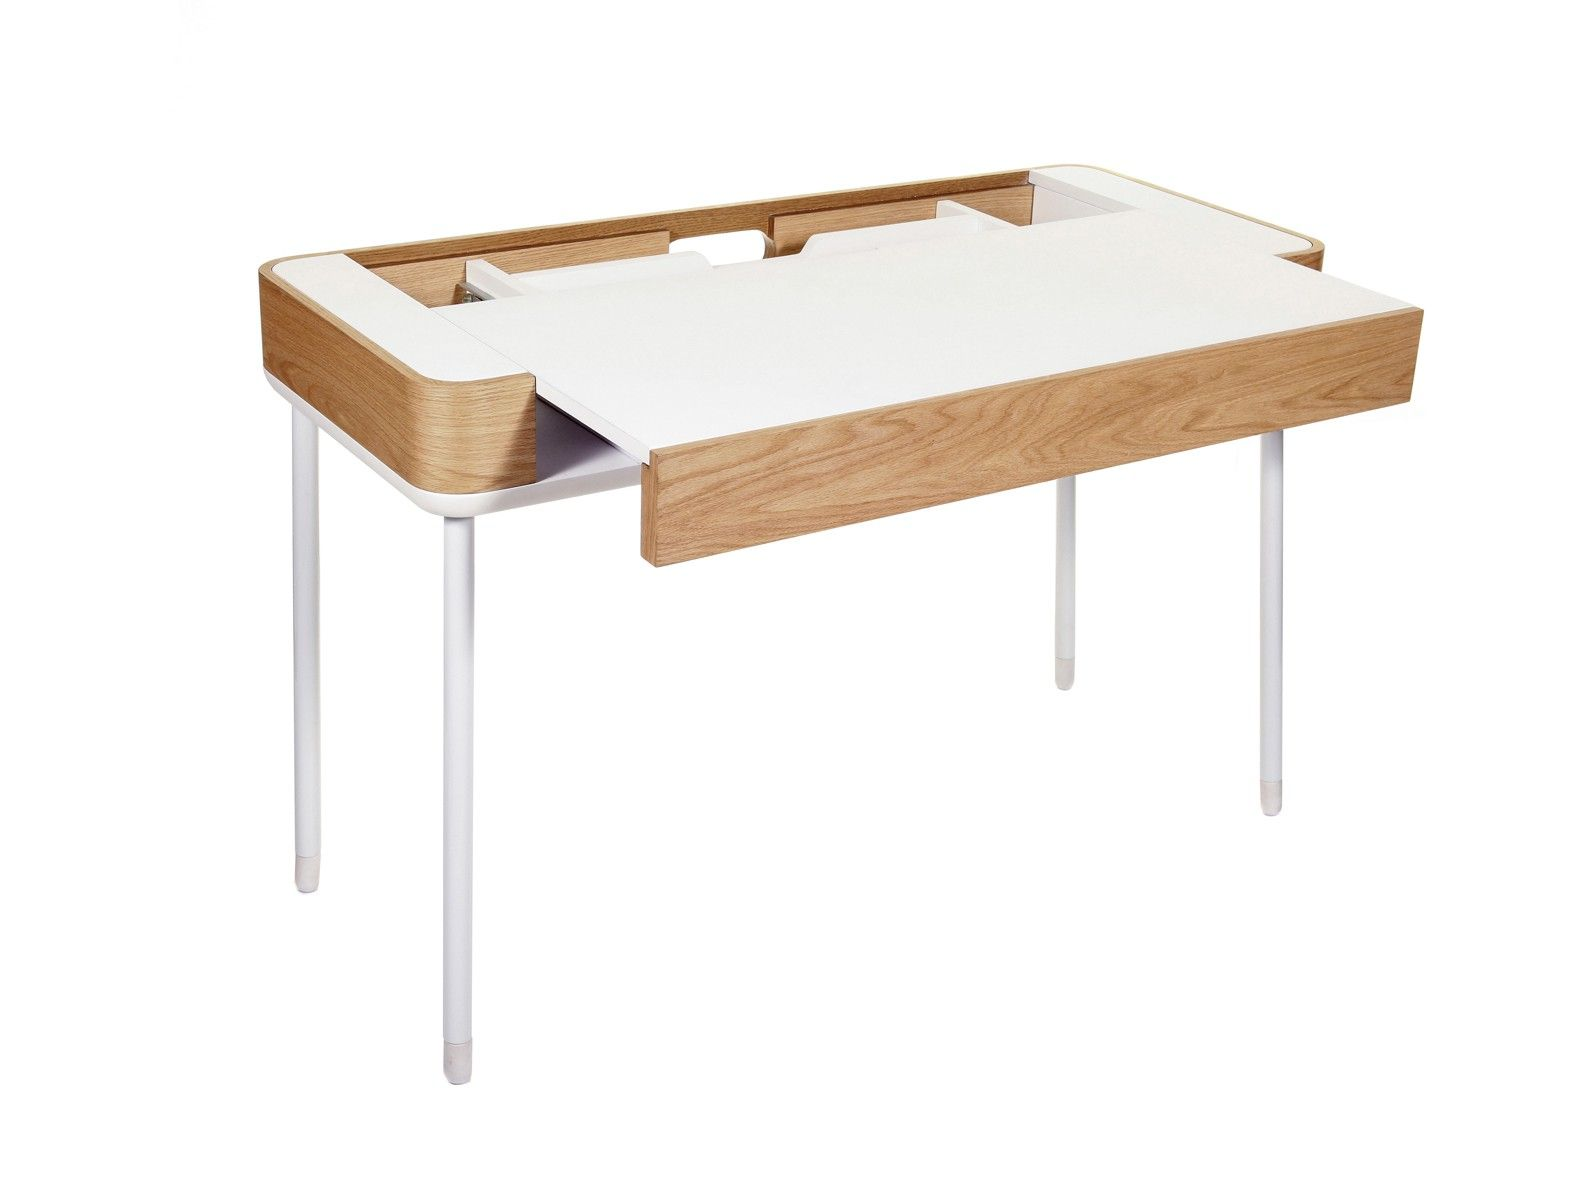 Pad console table console desk in white light oak by stil pad console table console desk in white light oak by stil furniture satin white light oak veneer finish minimal home assembly required geotapseo Choice Image